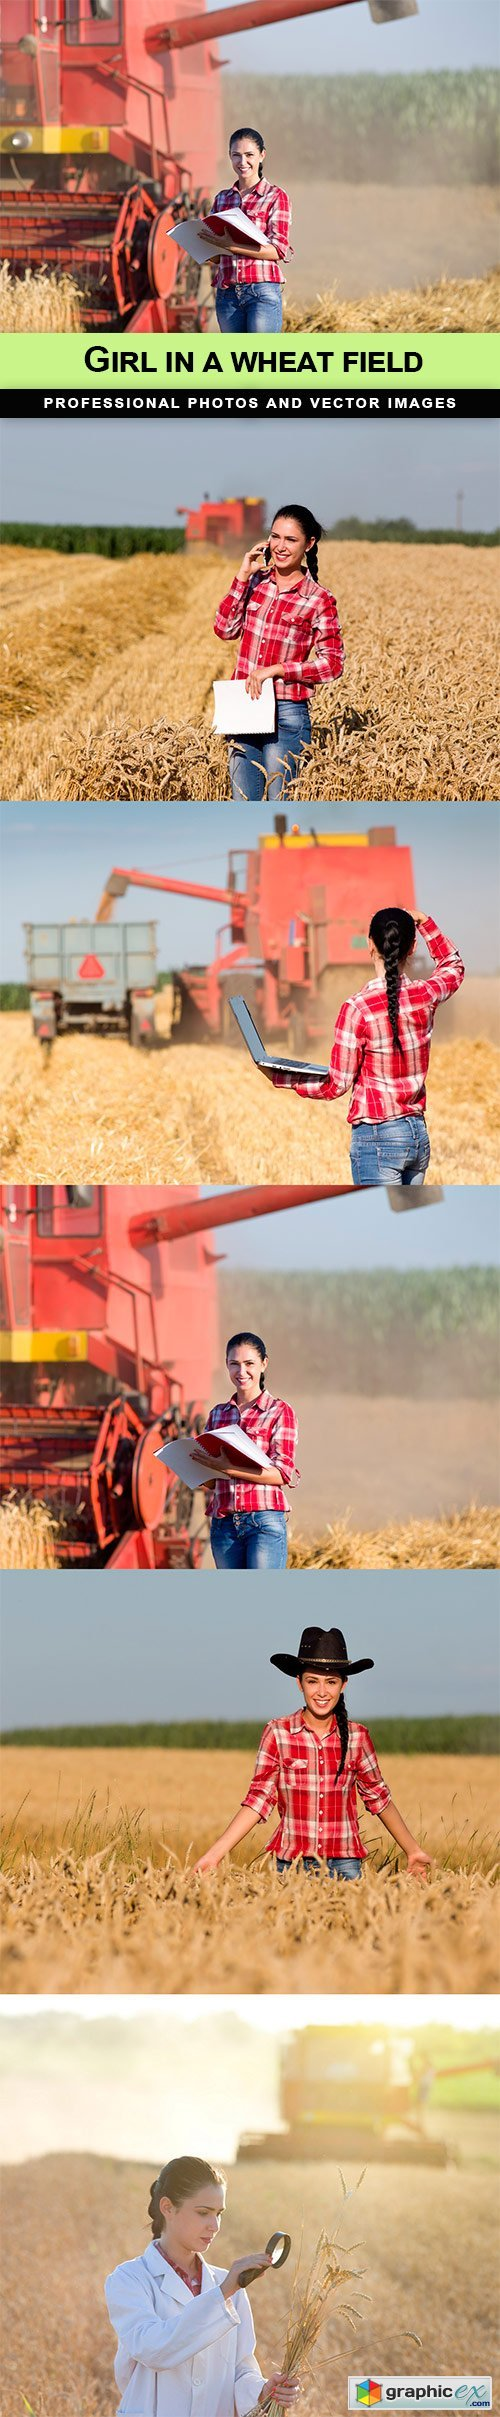 Girl in a wheat field - 5 UHQ JPEG